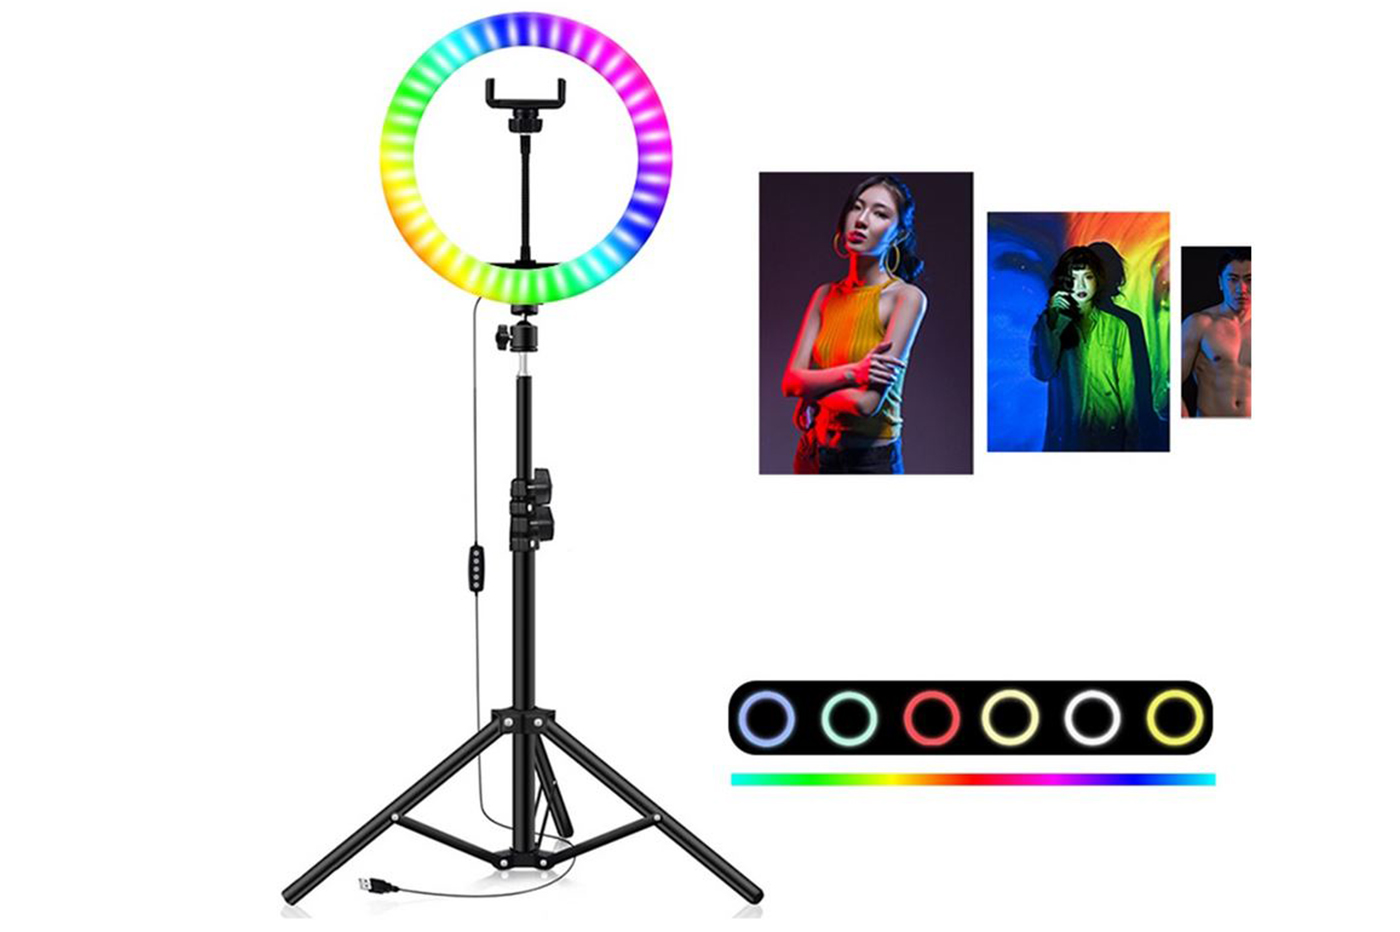 Anello luminoso led multicolor treppiede 26cm supporto cellulare selfie video